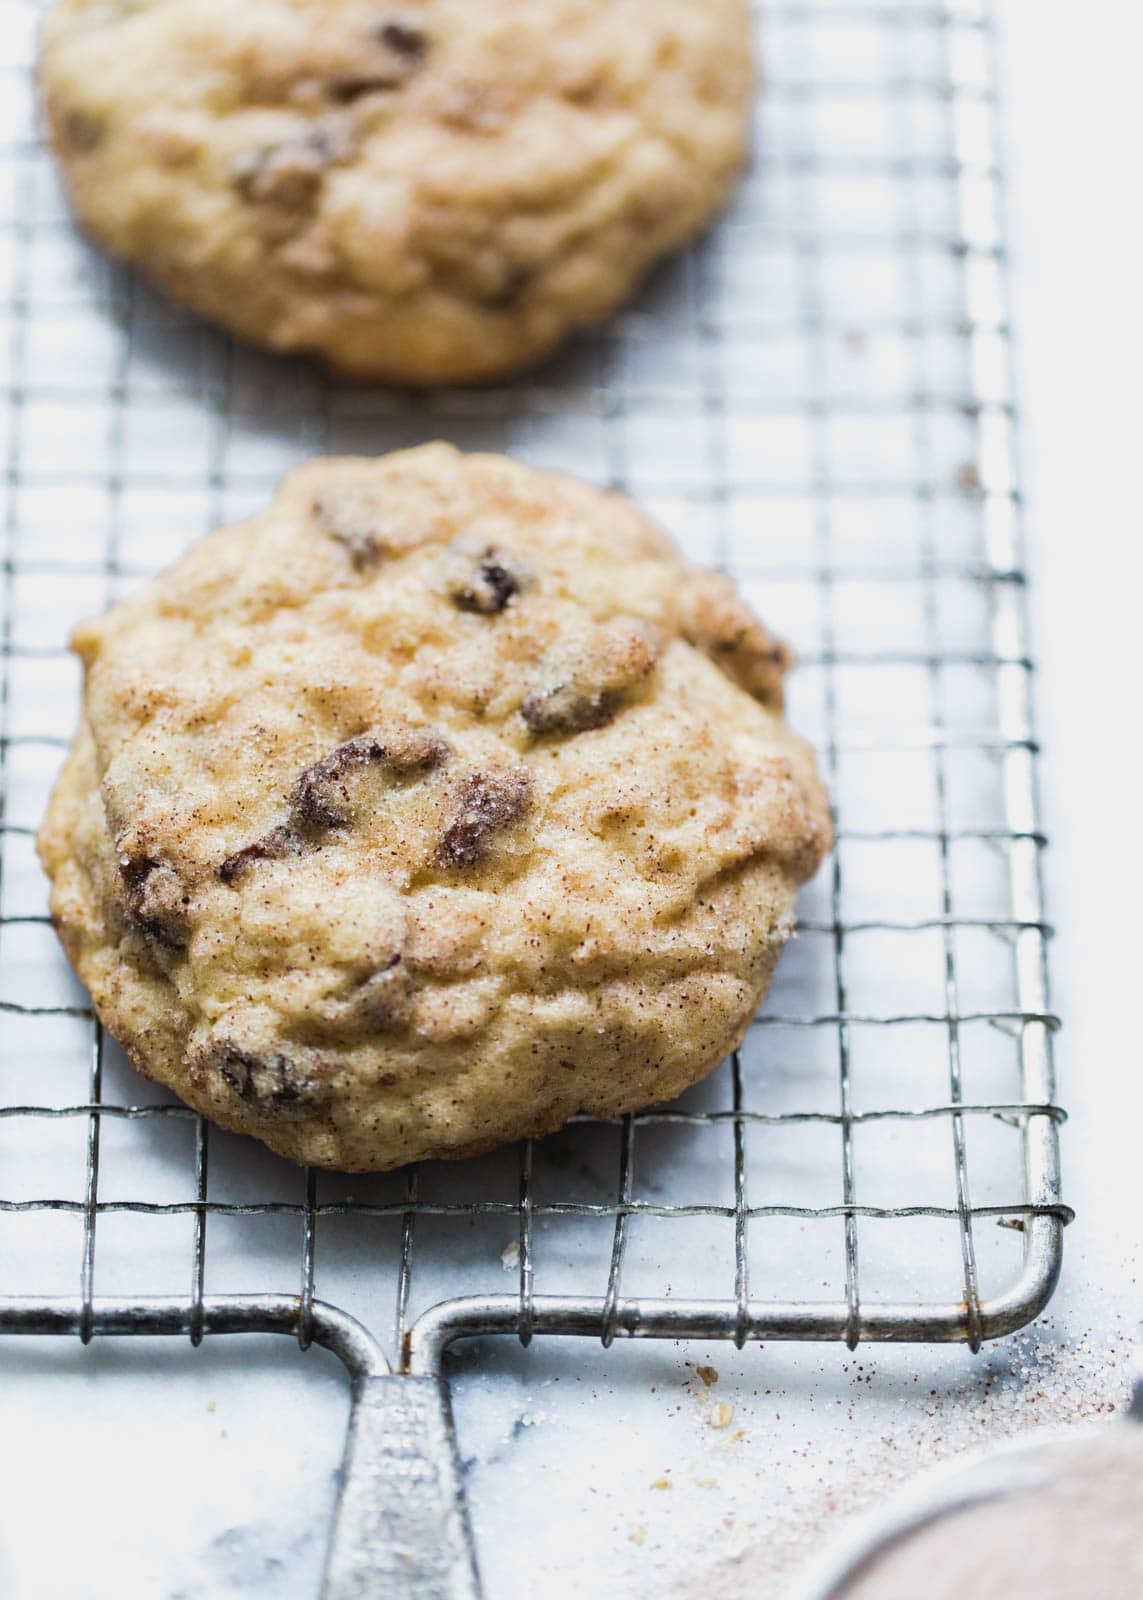 Oatmeal Raisin Snickerdoodle Cookies on a wire rack